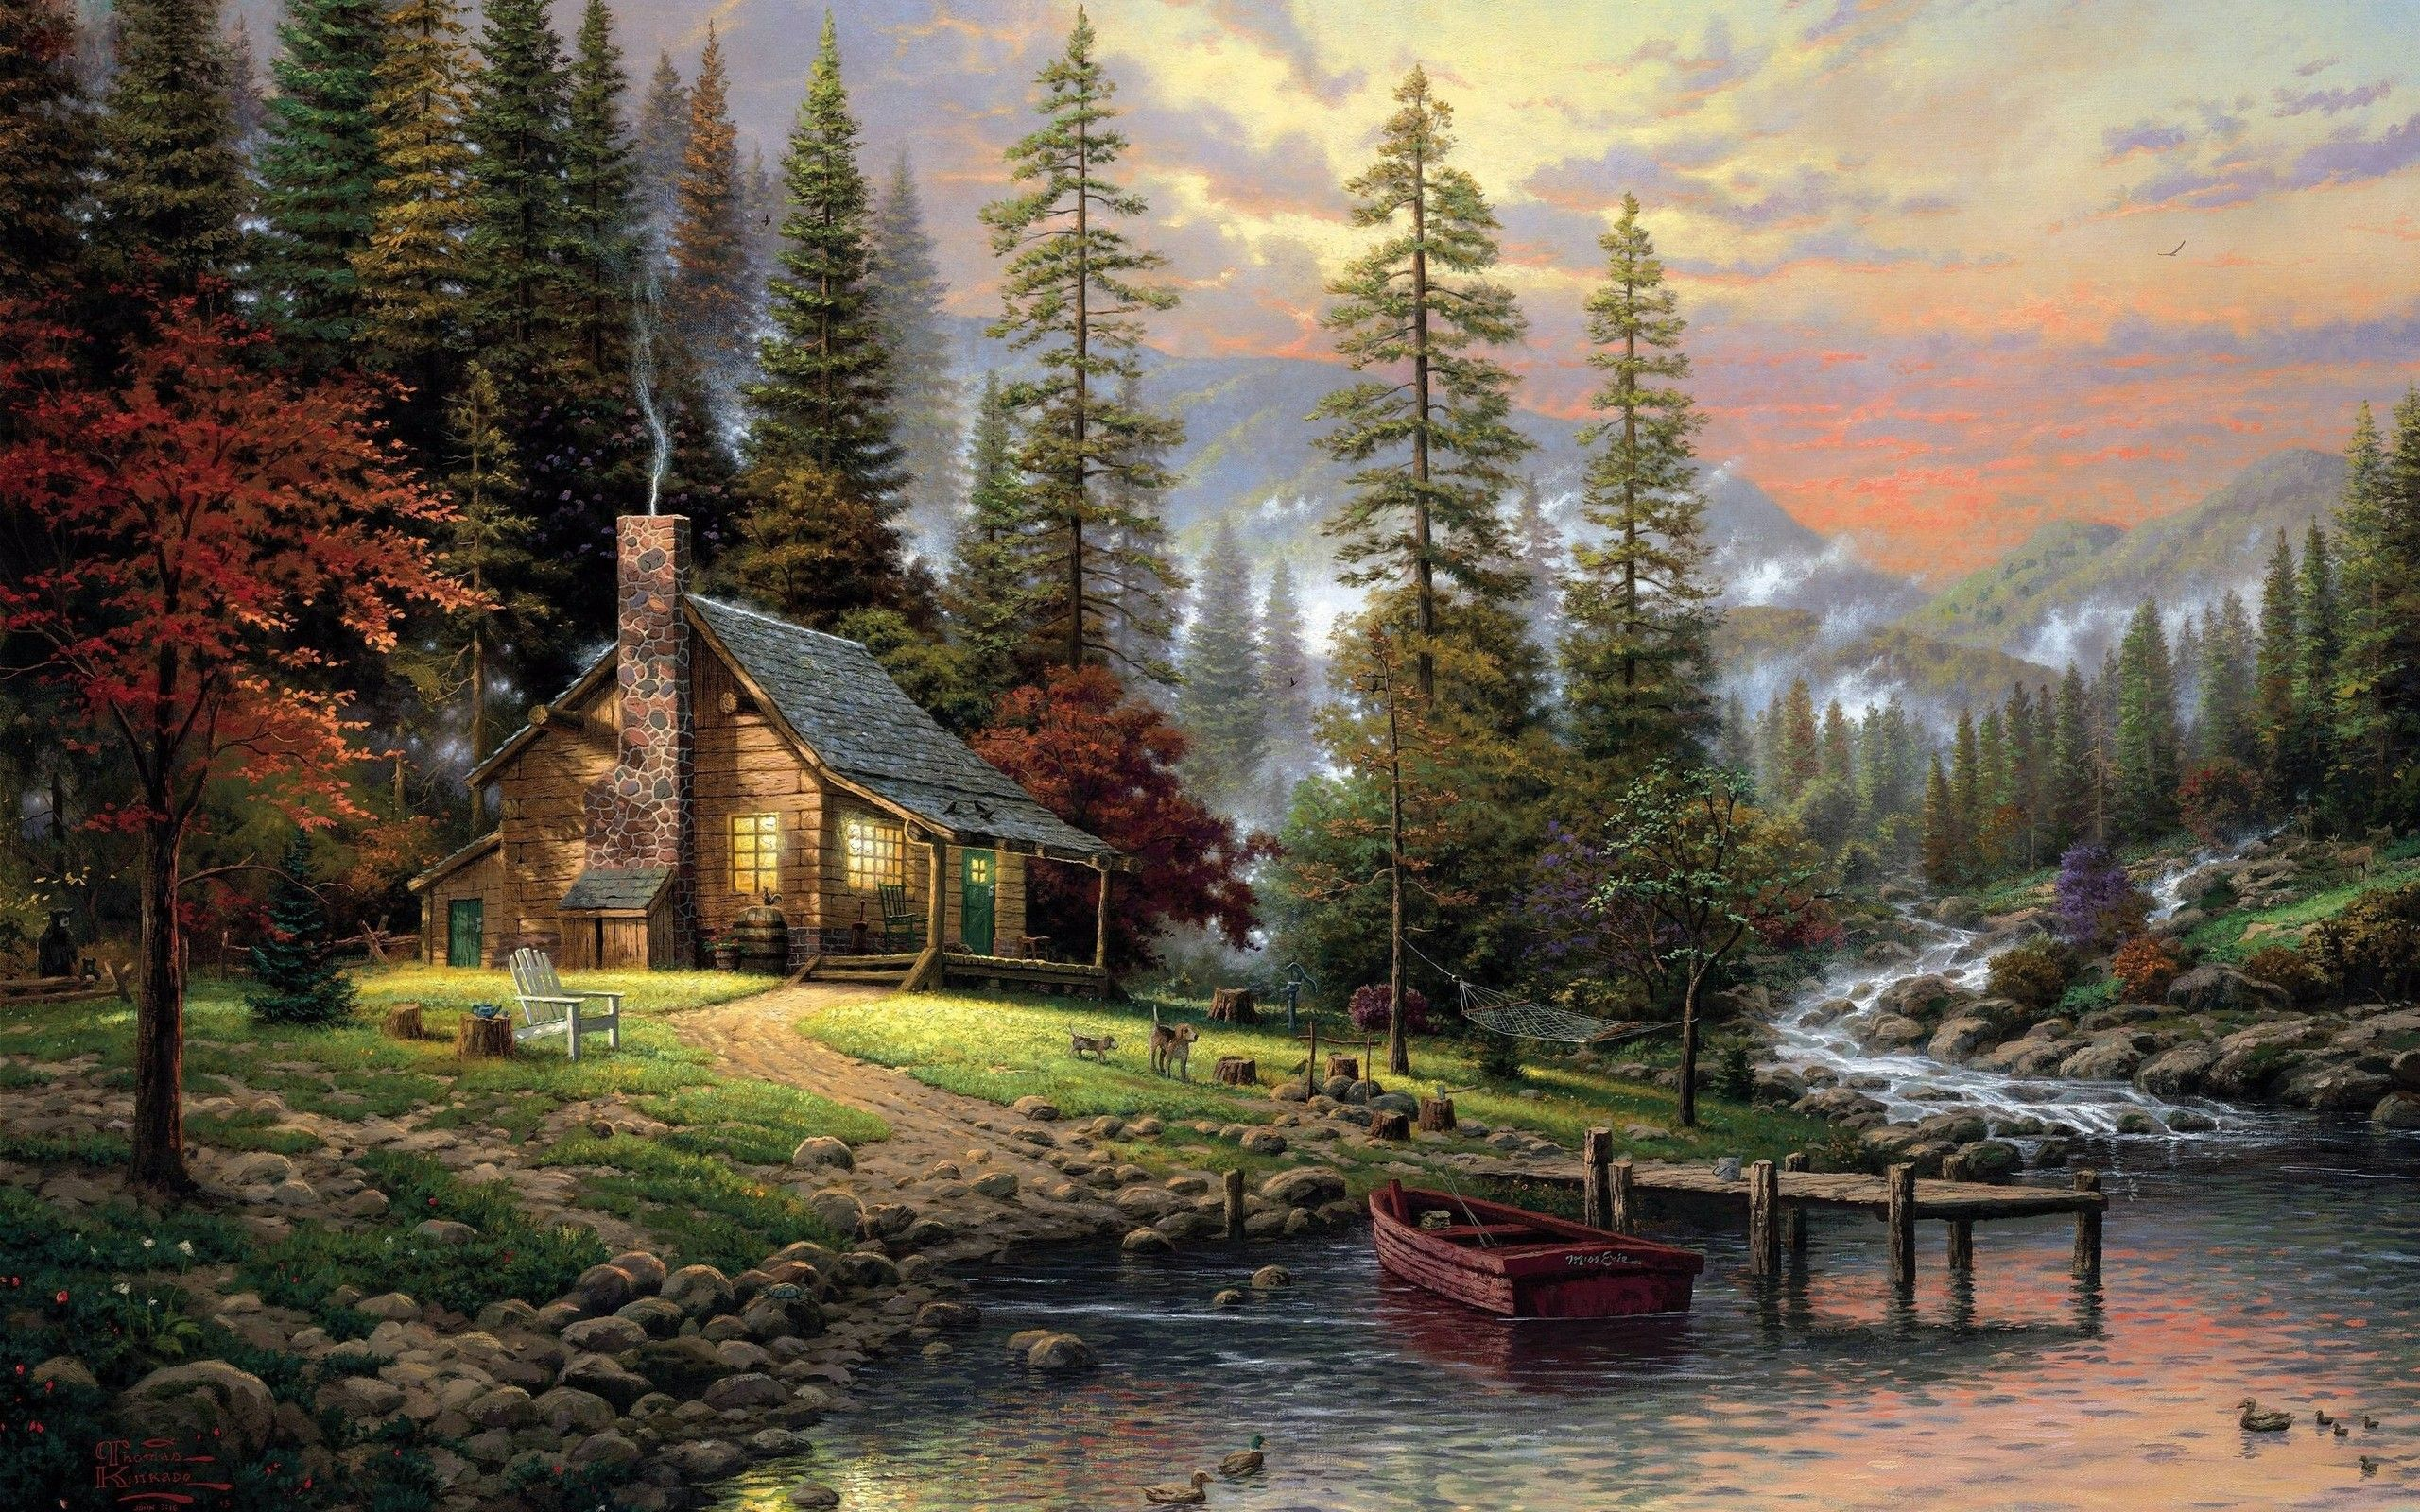 Log cabin in the woods painting - Famous Painting Wallpapers Android Apps On Google Play Hd Wallpapers Pinterest Forest Painting Hd Wallpaper And Wallpaper